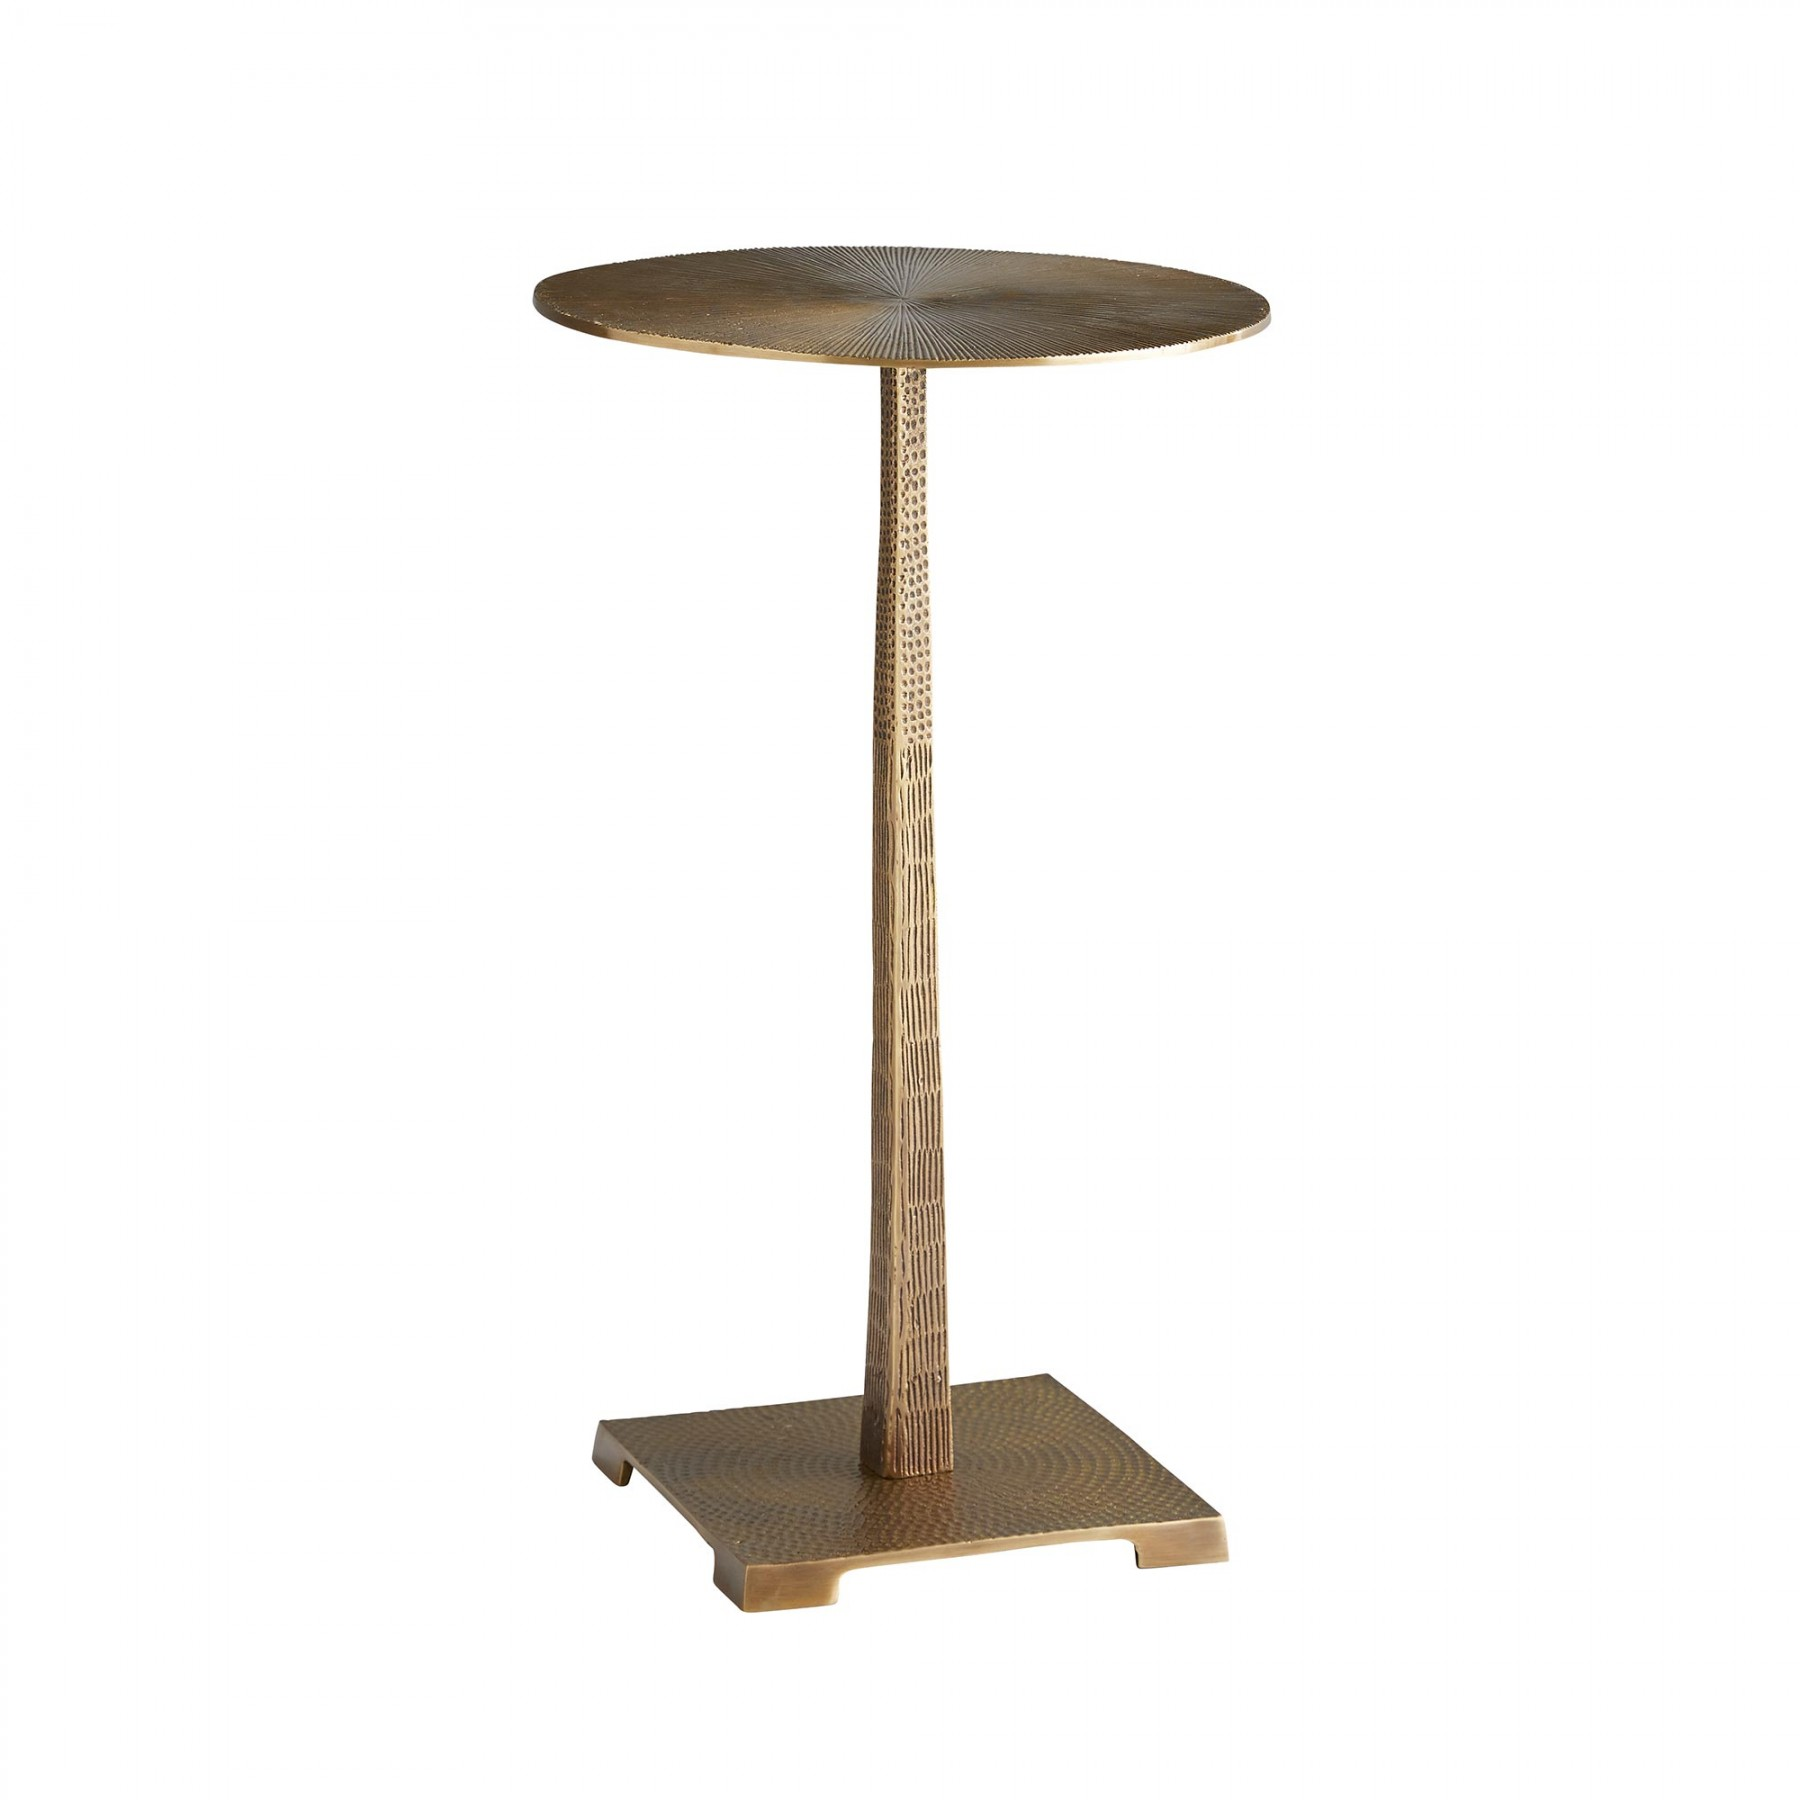 otelia accent table brass trestle base diy side drop leaf kitchen and chairs floor ikea retro style sofa room essentials comforter small coffee sets tall round end target glass